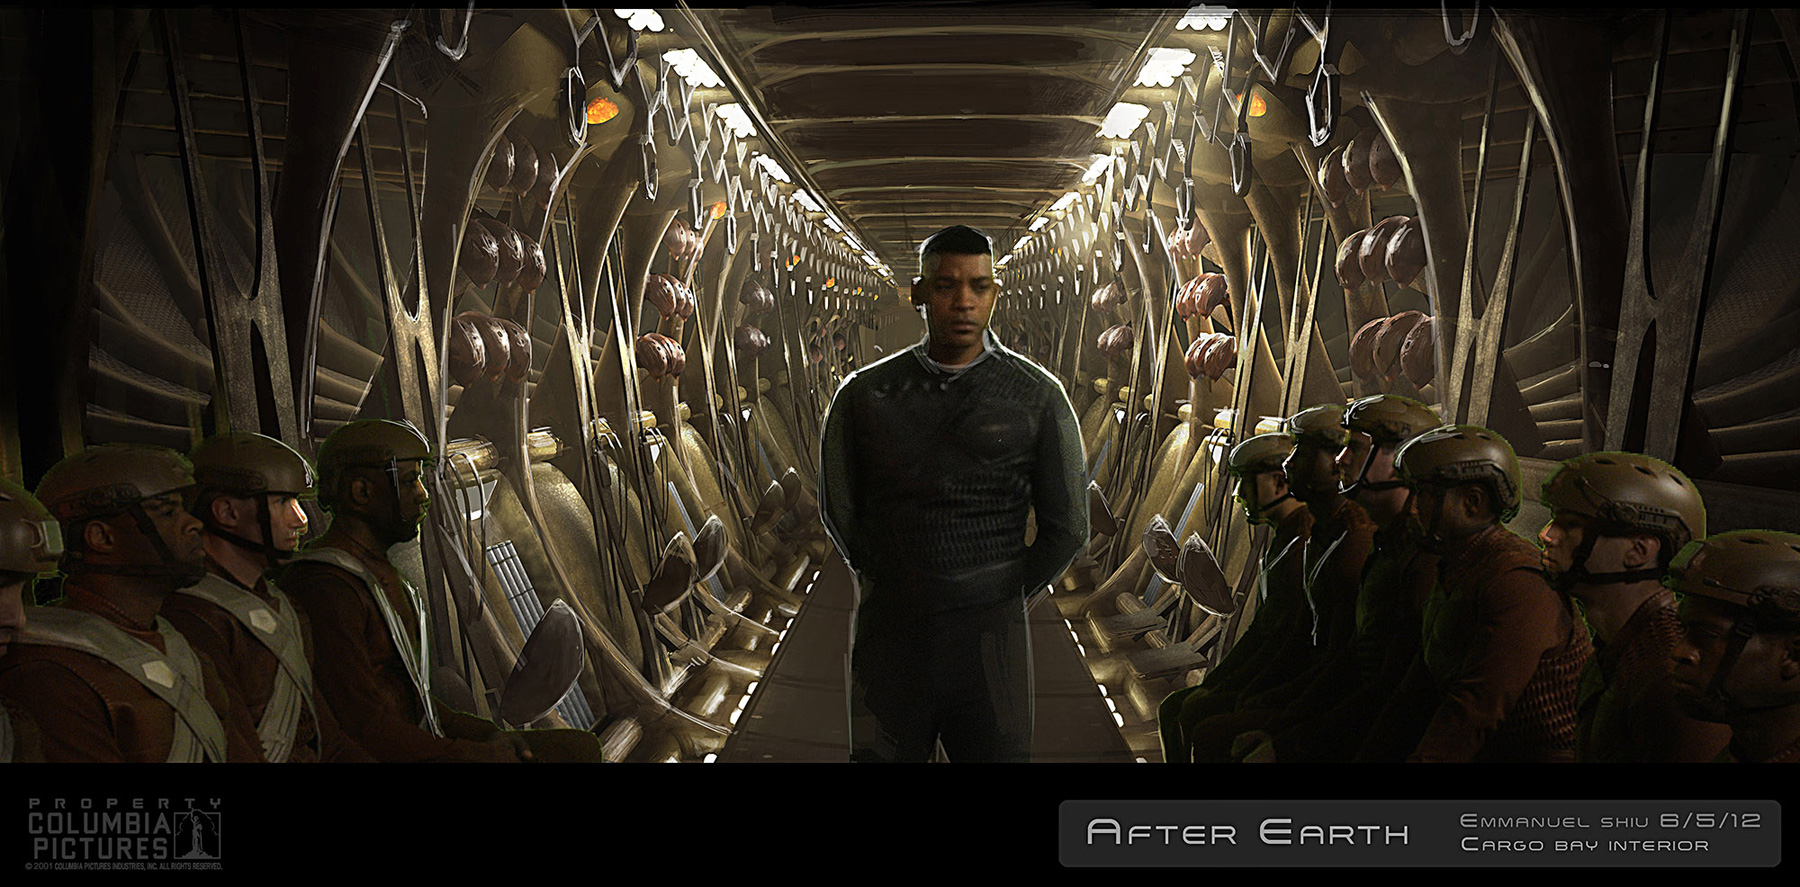 after earth concept art - photo #28